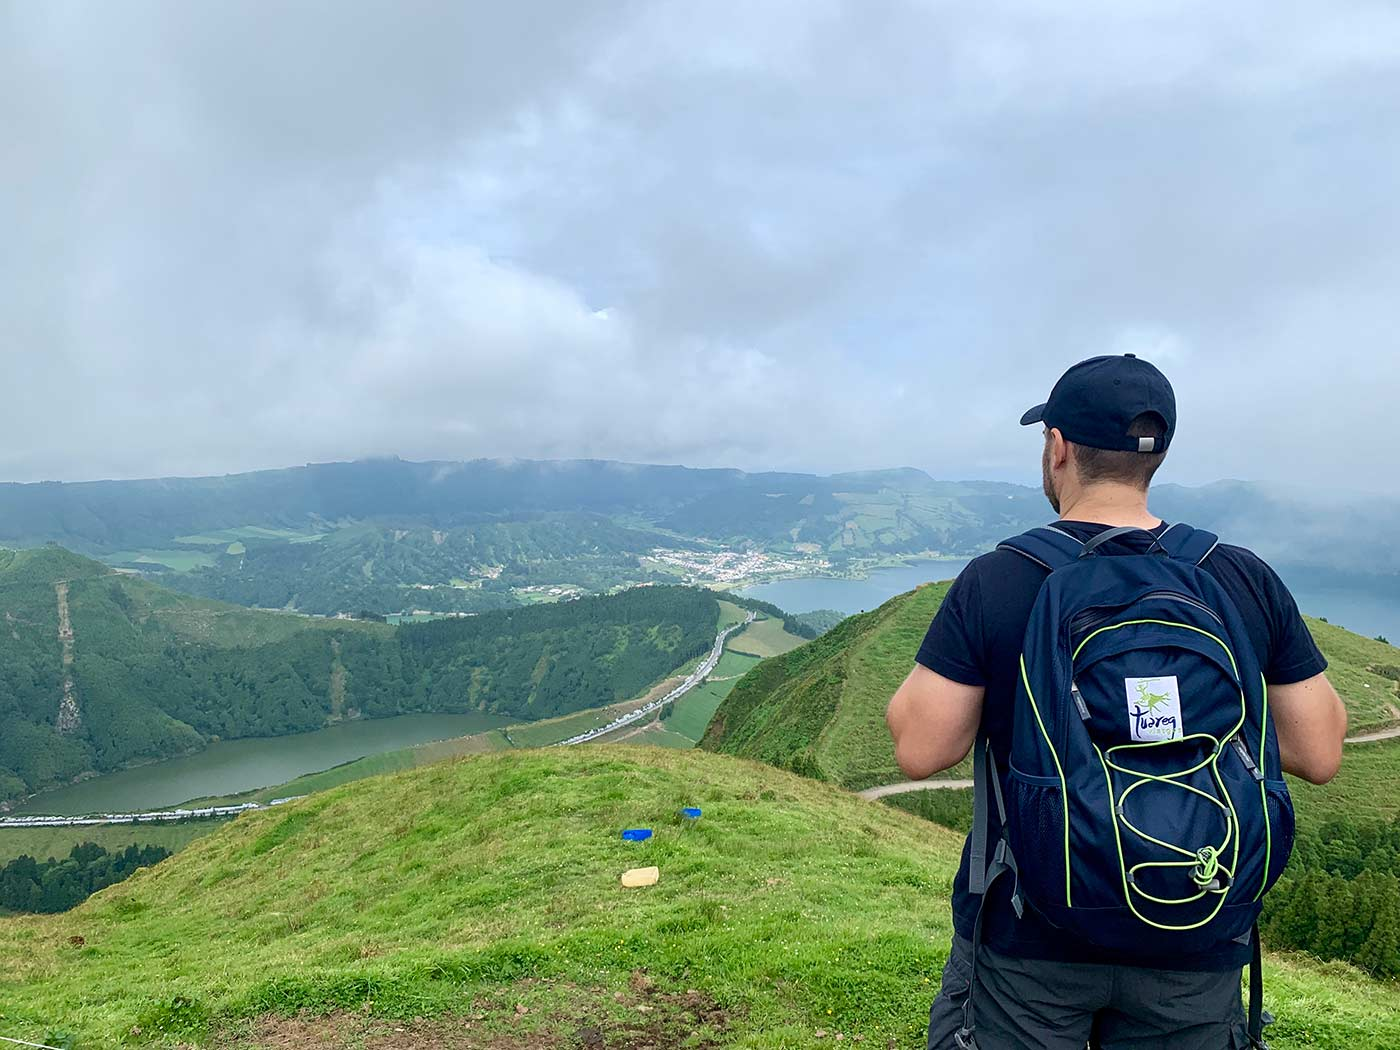 Around sete cidades